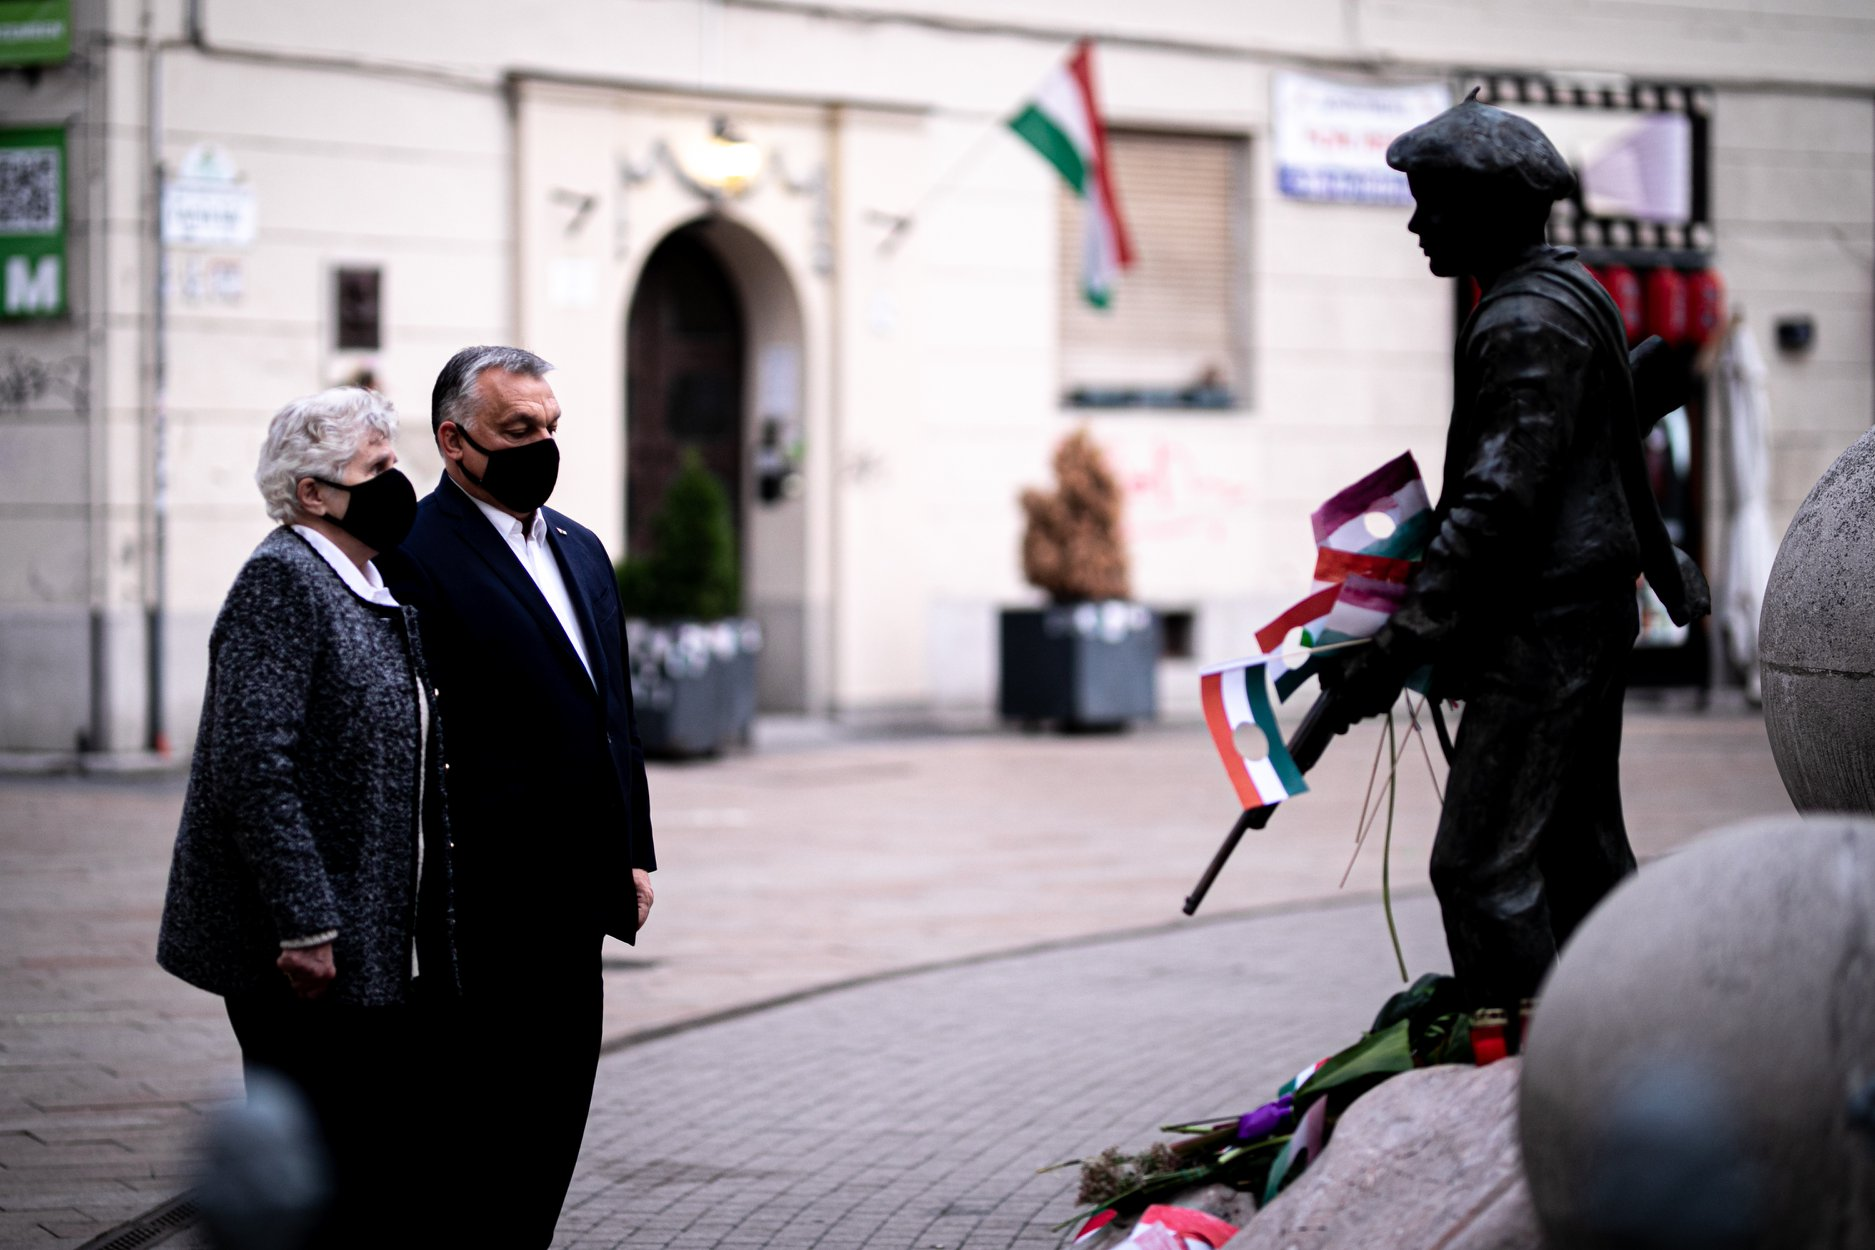 October 23: Orbán Commemorates 1956 with Freedom Fighter Wittner